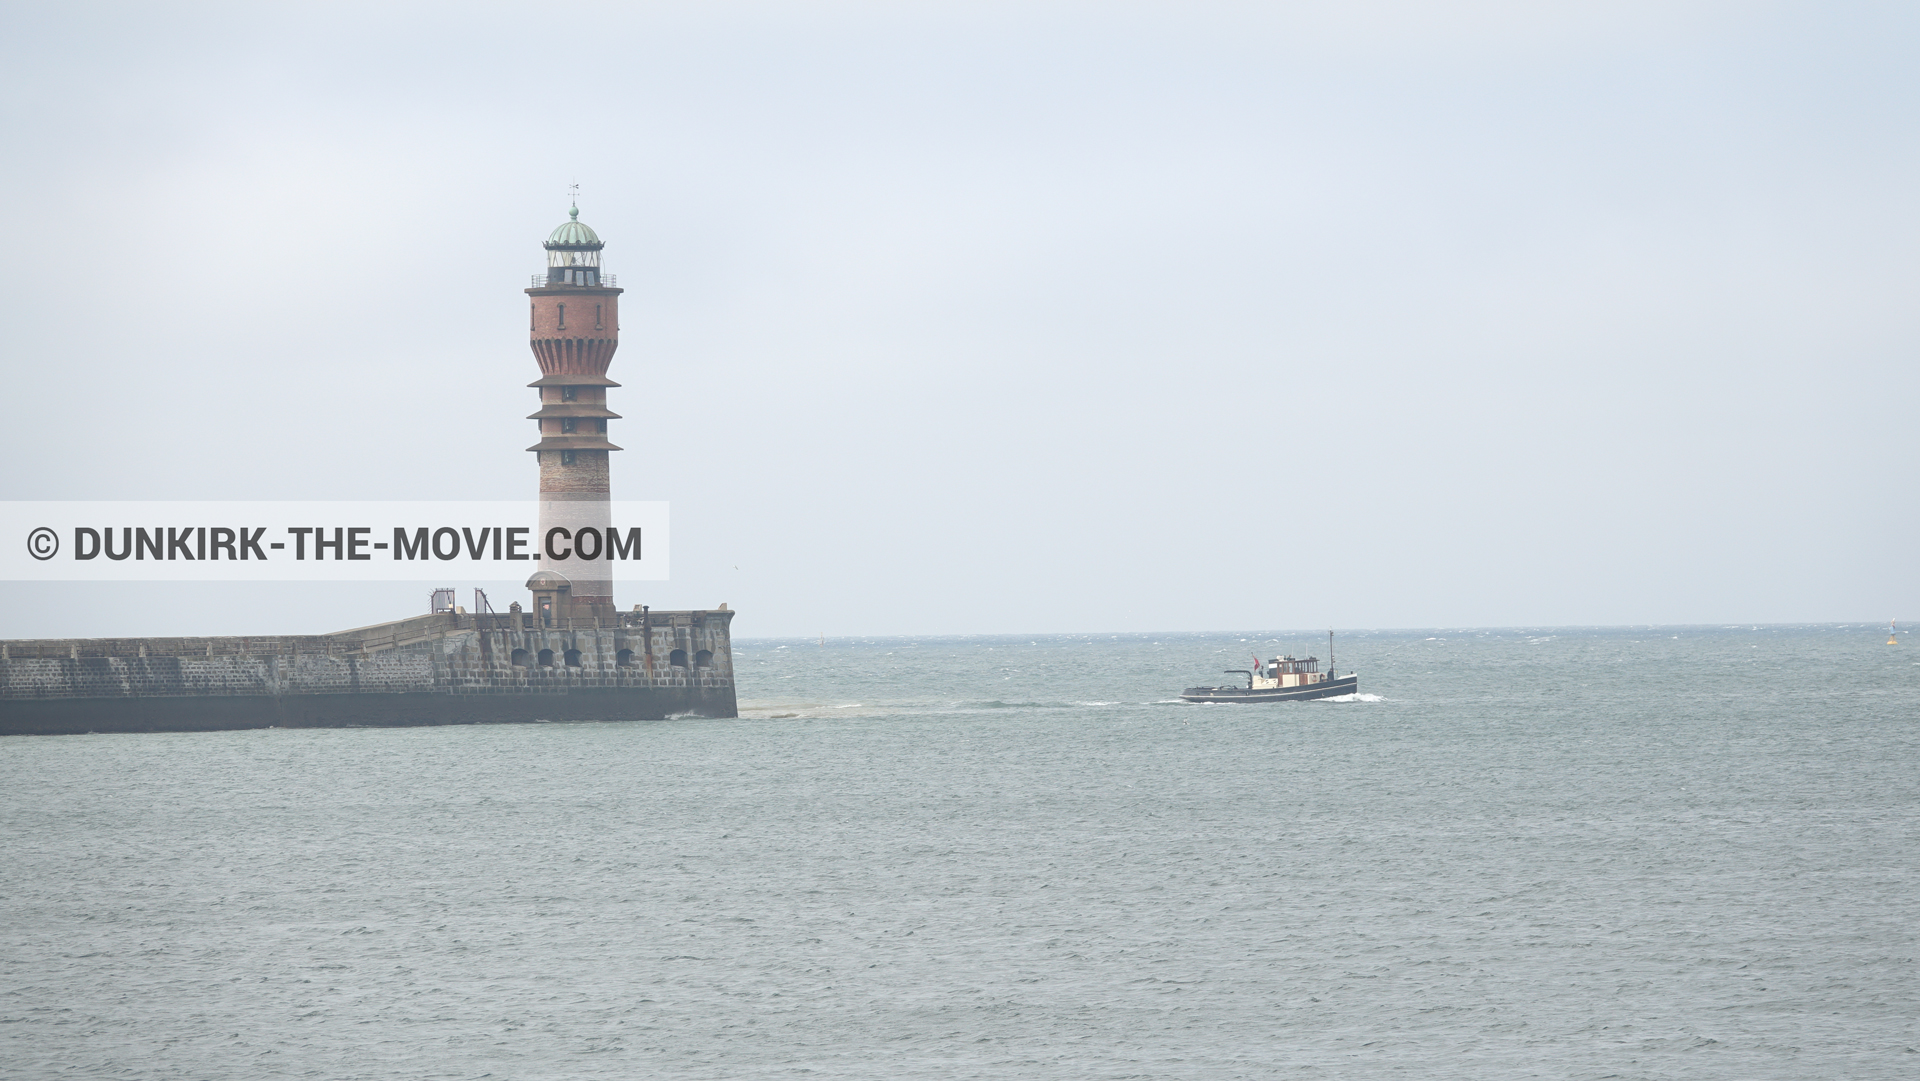 Picture with boat, St Pol sur Mer lighthouse,  from behind the scene of the Dunkirk movie by Nolan